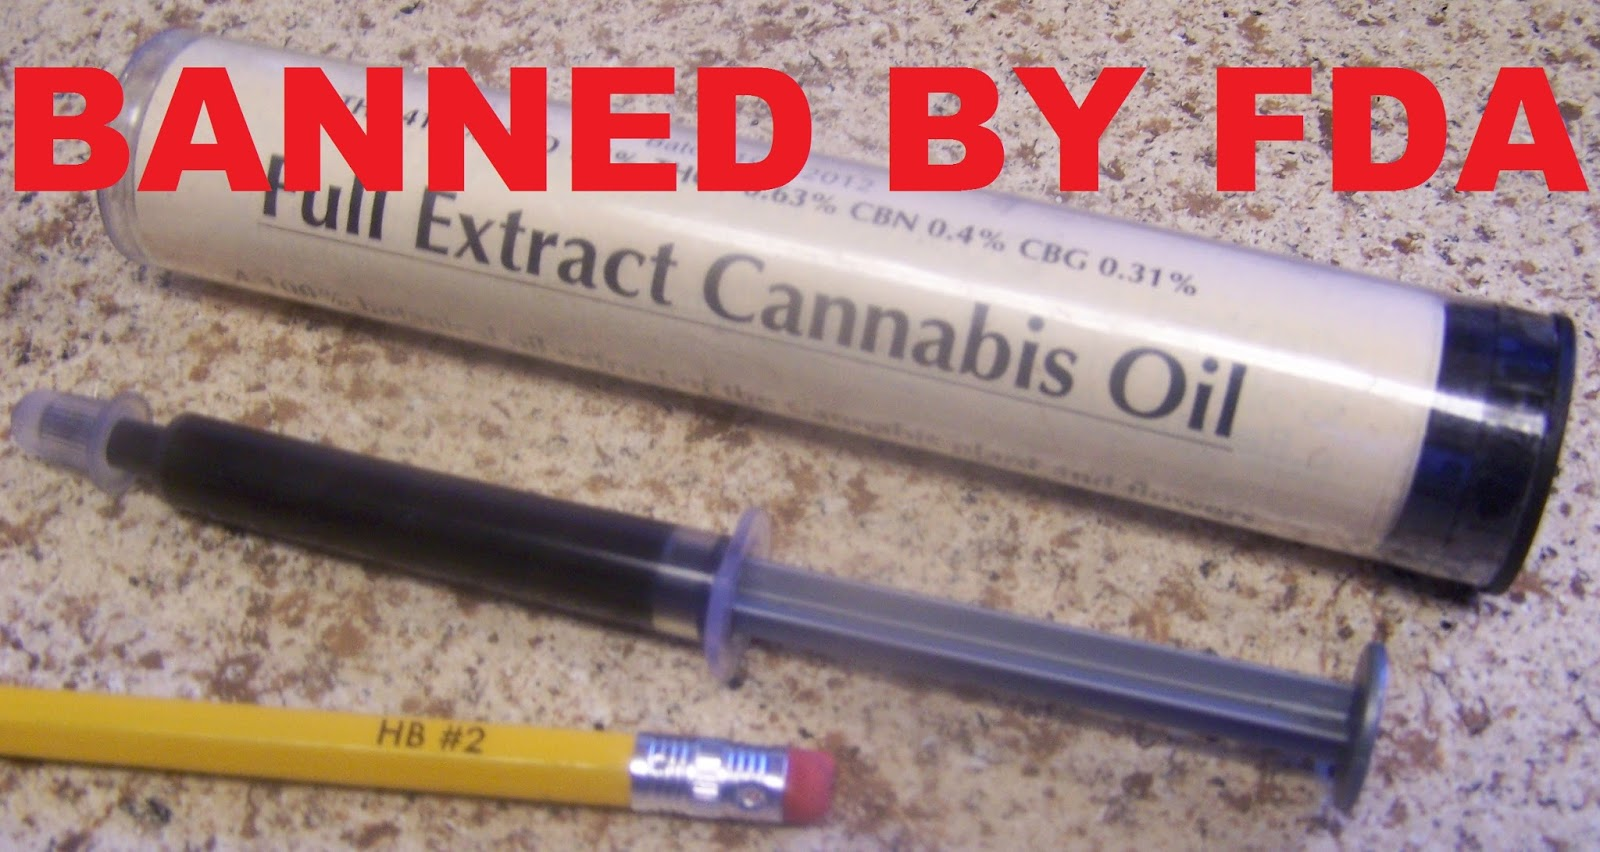 Cannabis Oil - Banned by FDA